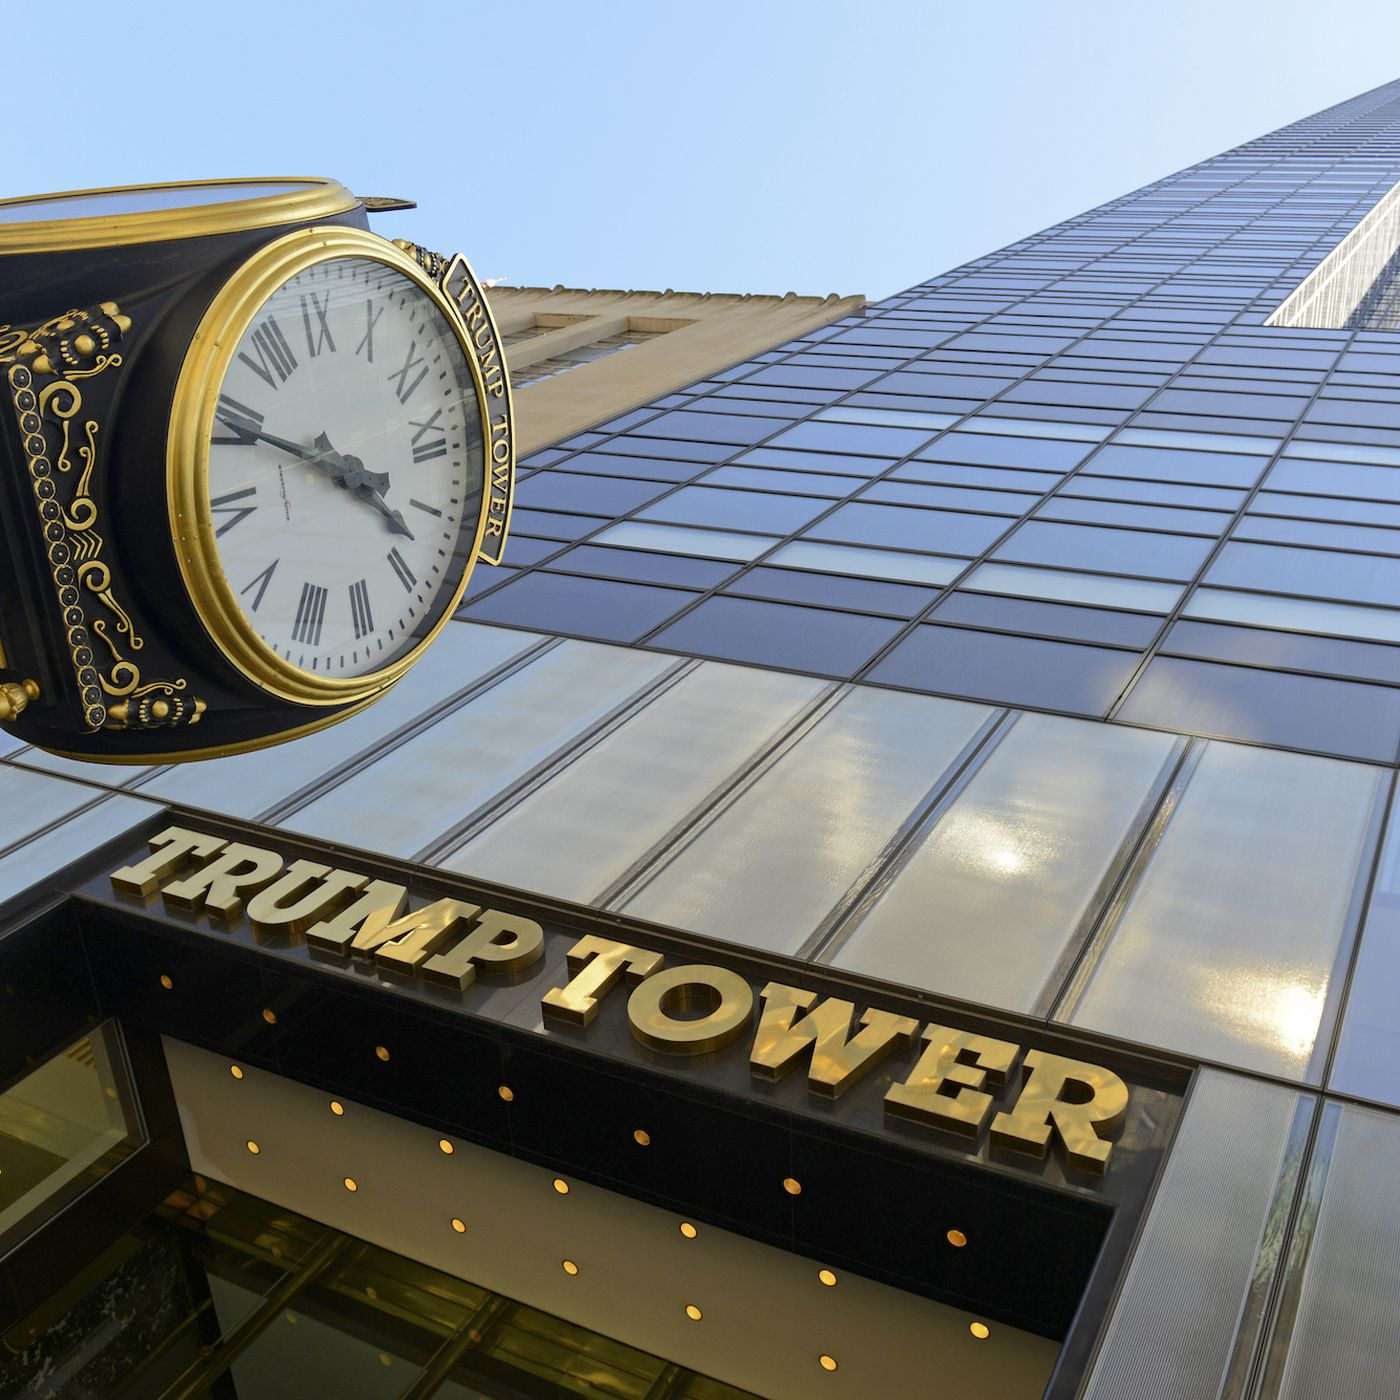 Meet the notorious characters who call Trump Tower home - Curbed NY